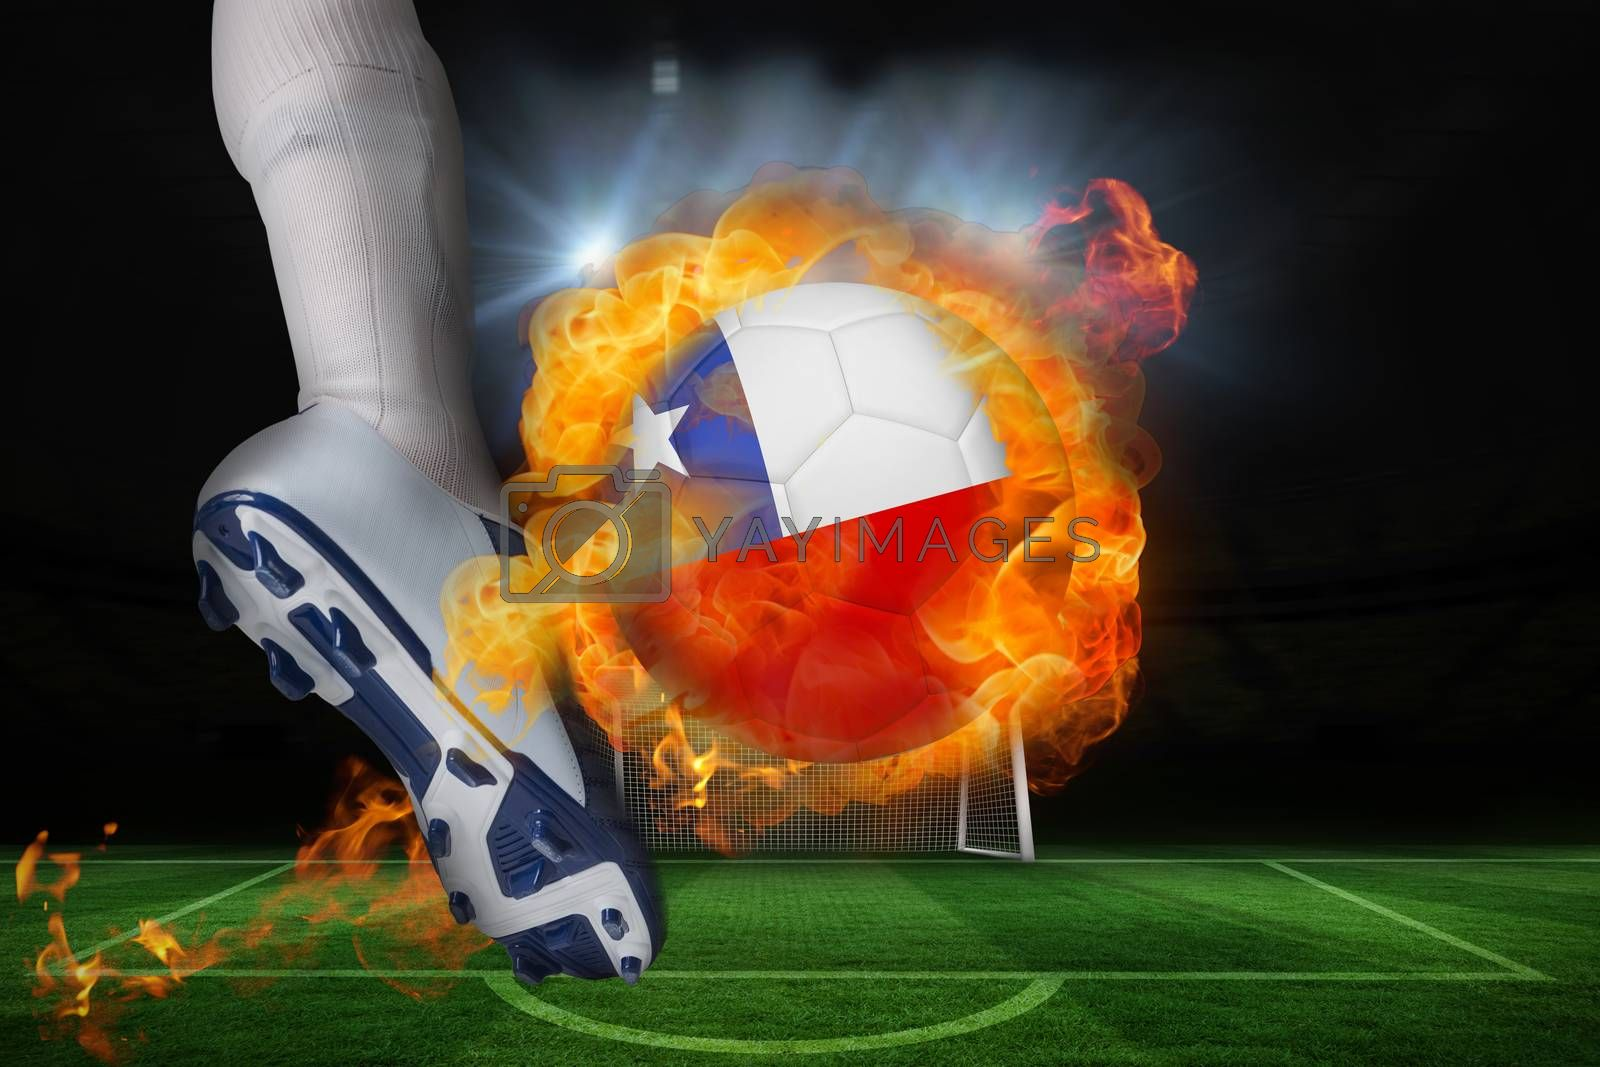 Football player kicking flaming chile flag ball by Wavebreakmedia